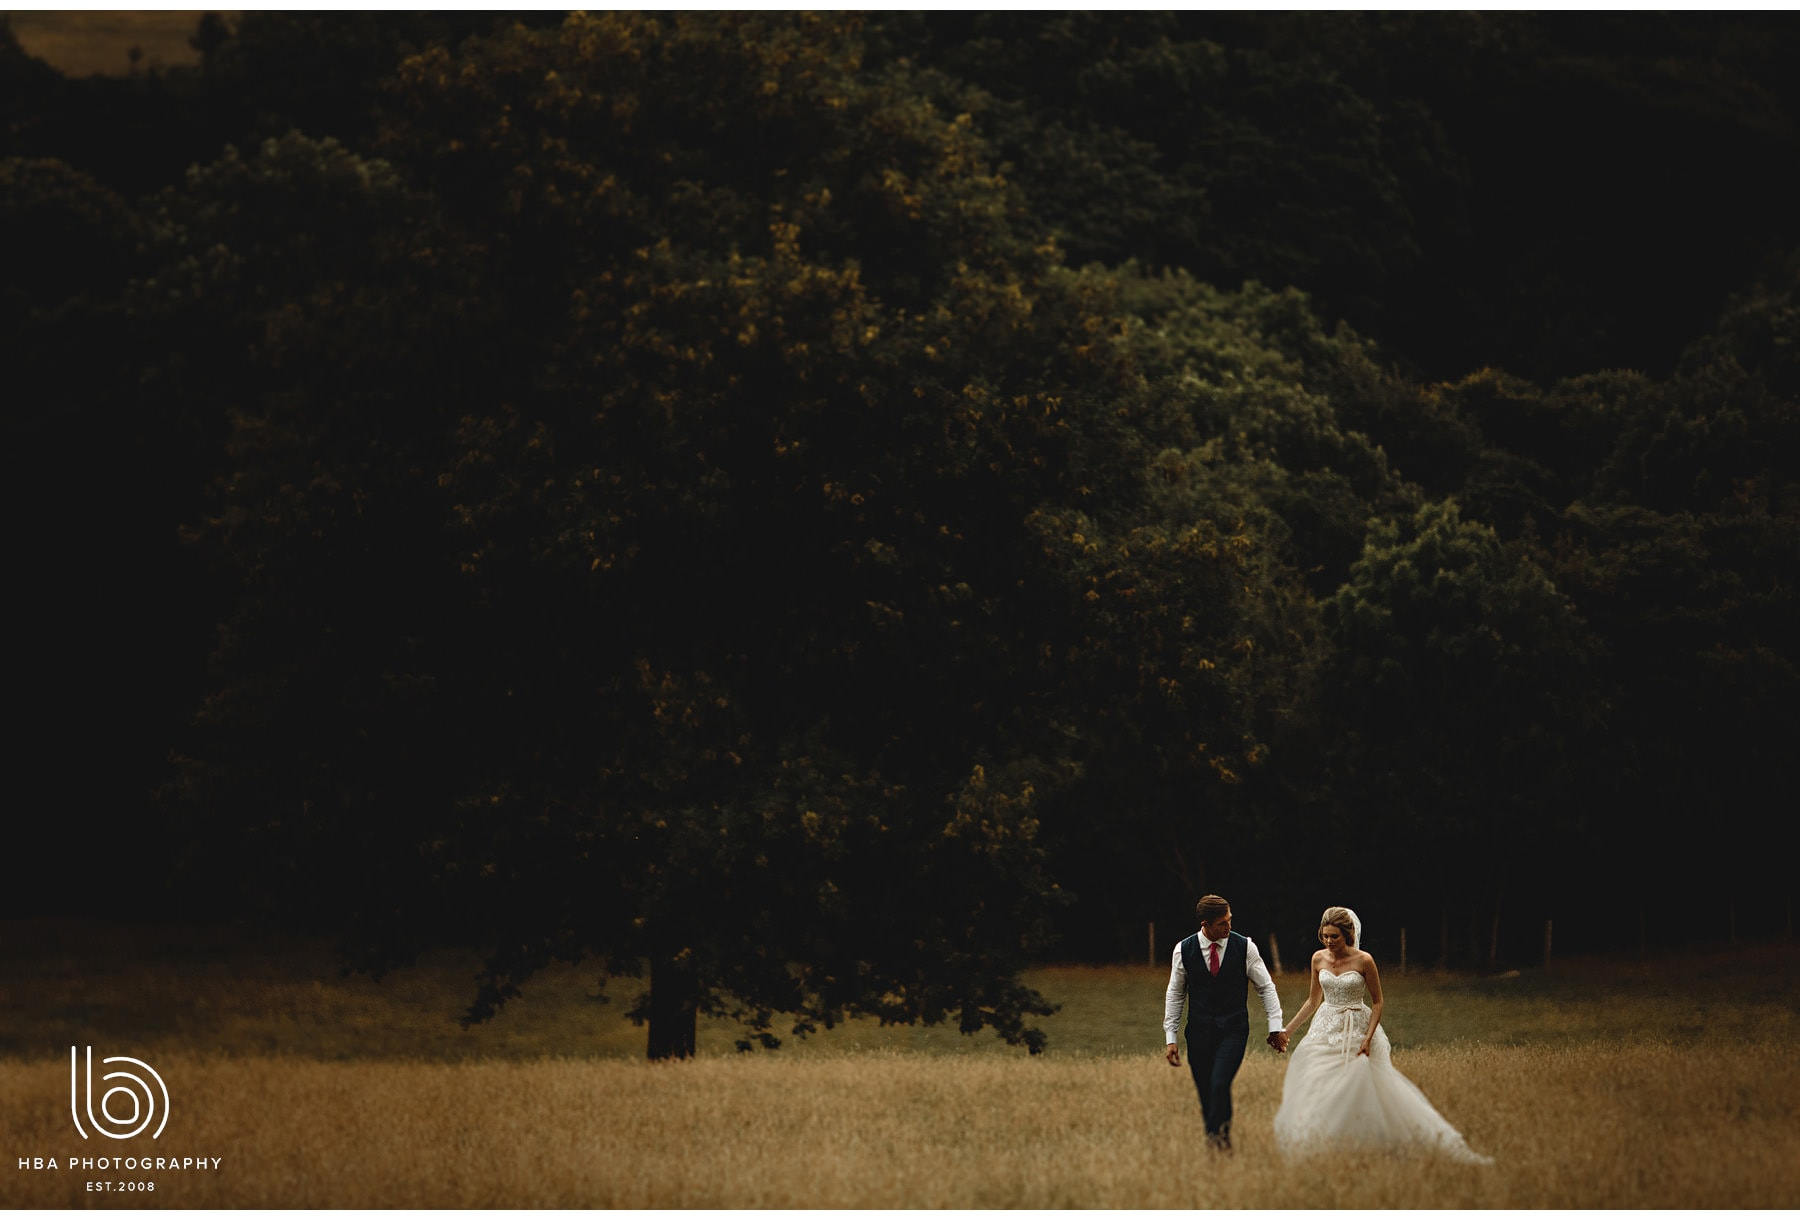 Losehill_House_Wedding_Photos_Derbyshire_Peak_District_